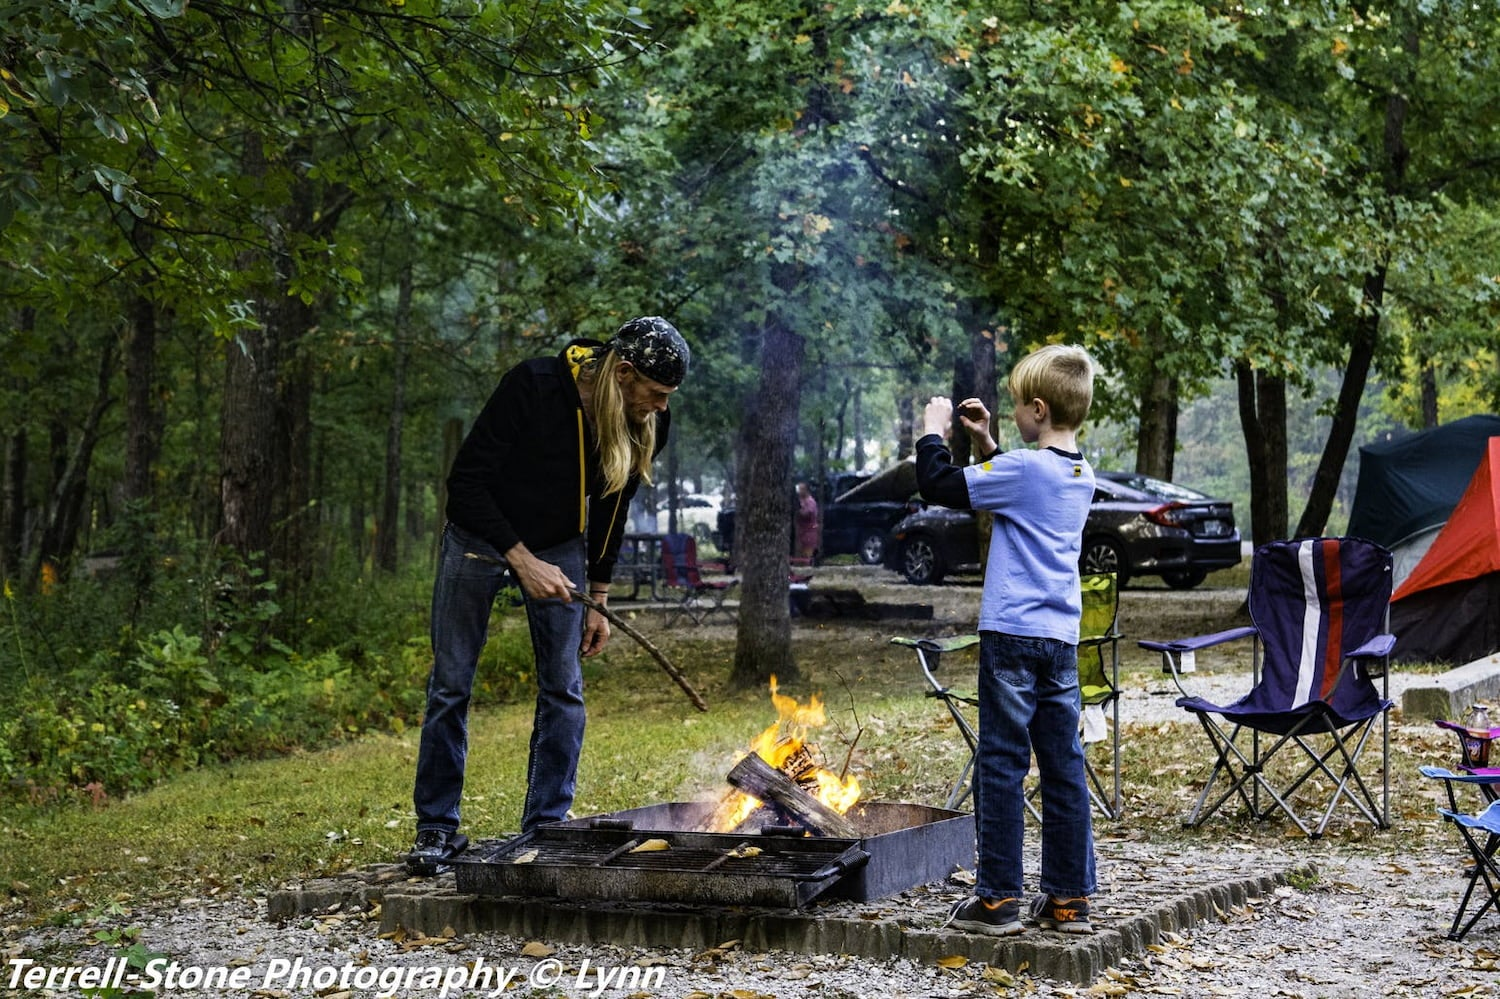 father and son tending the fire at a campsite